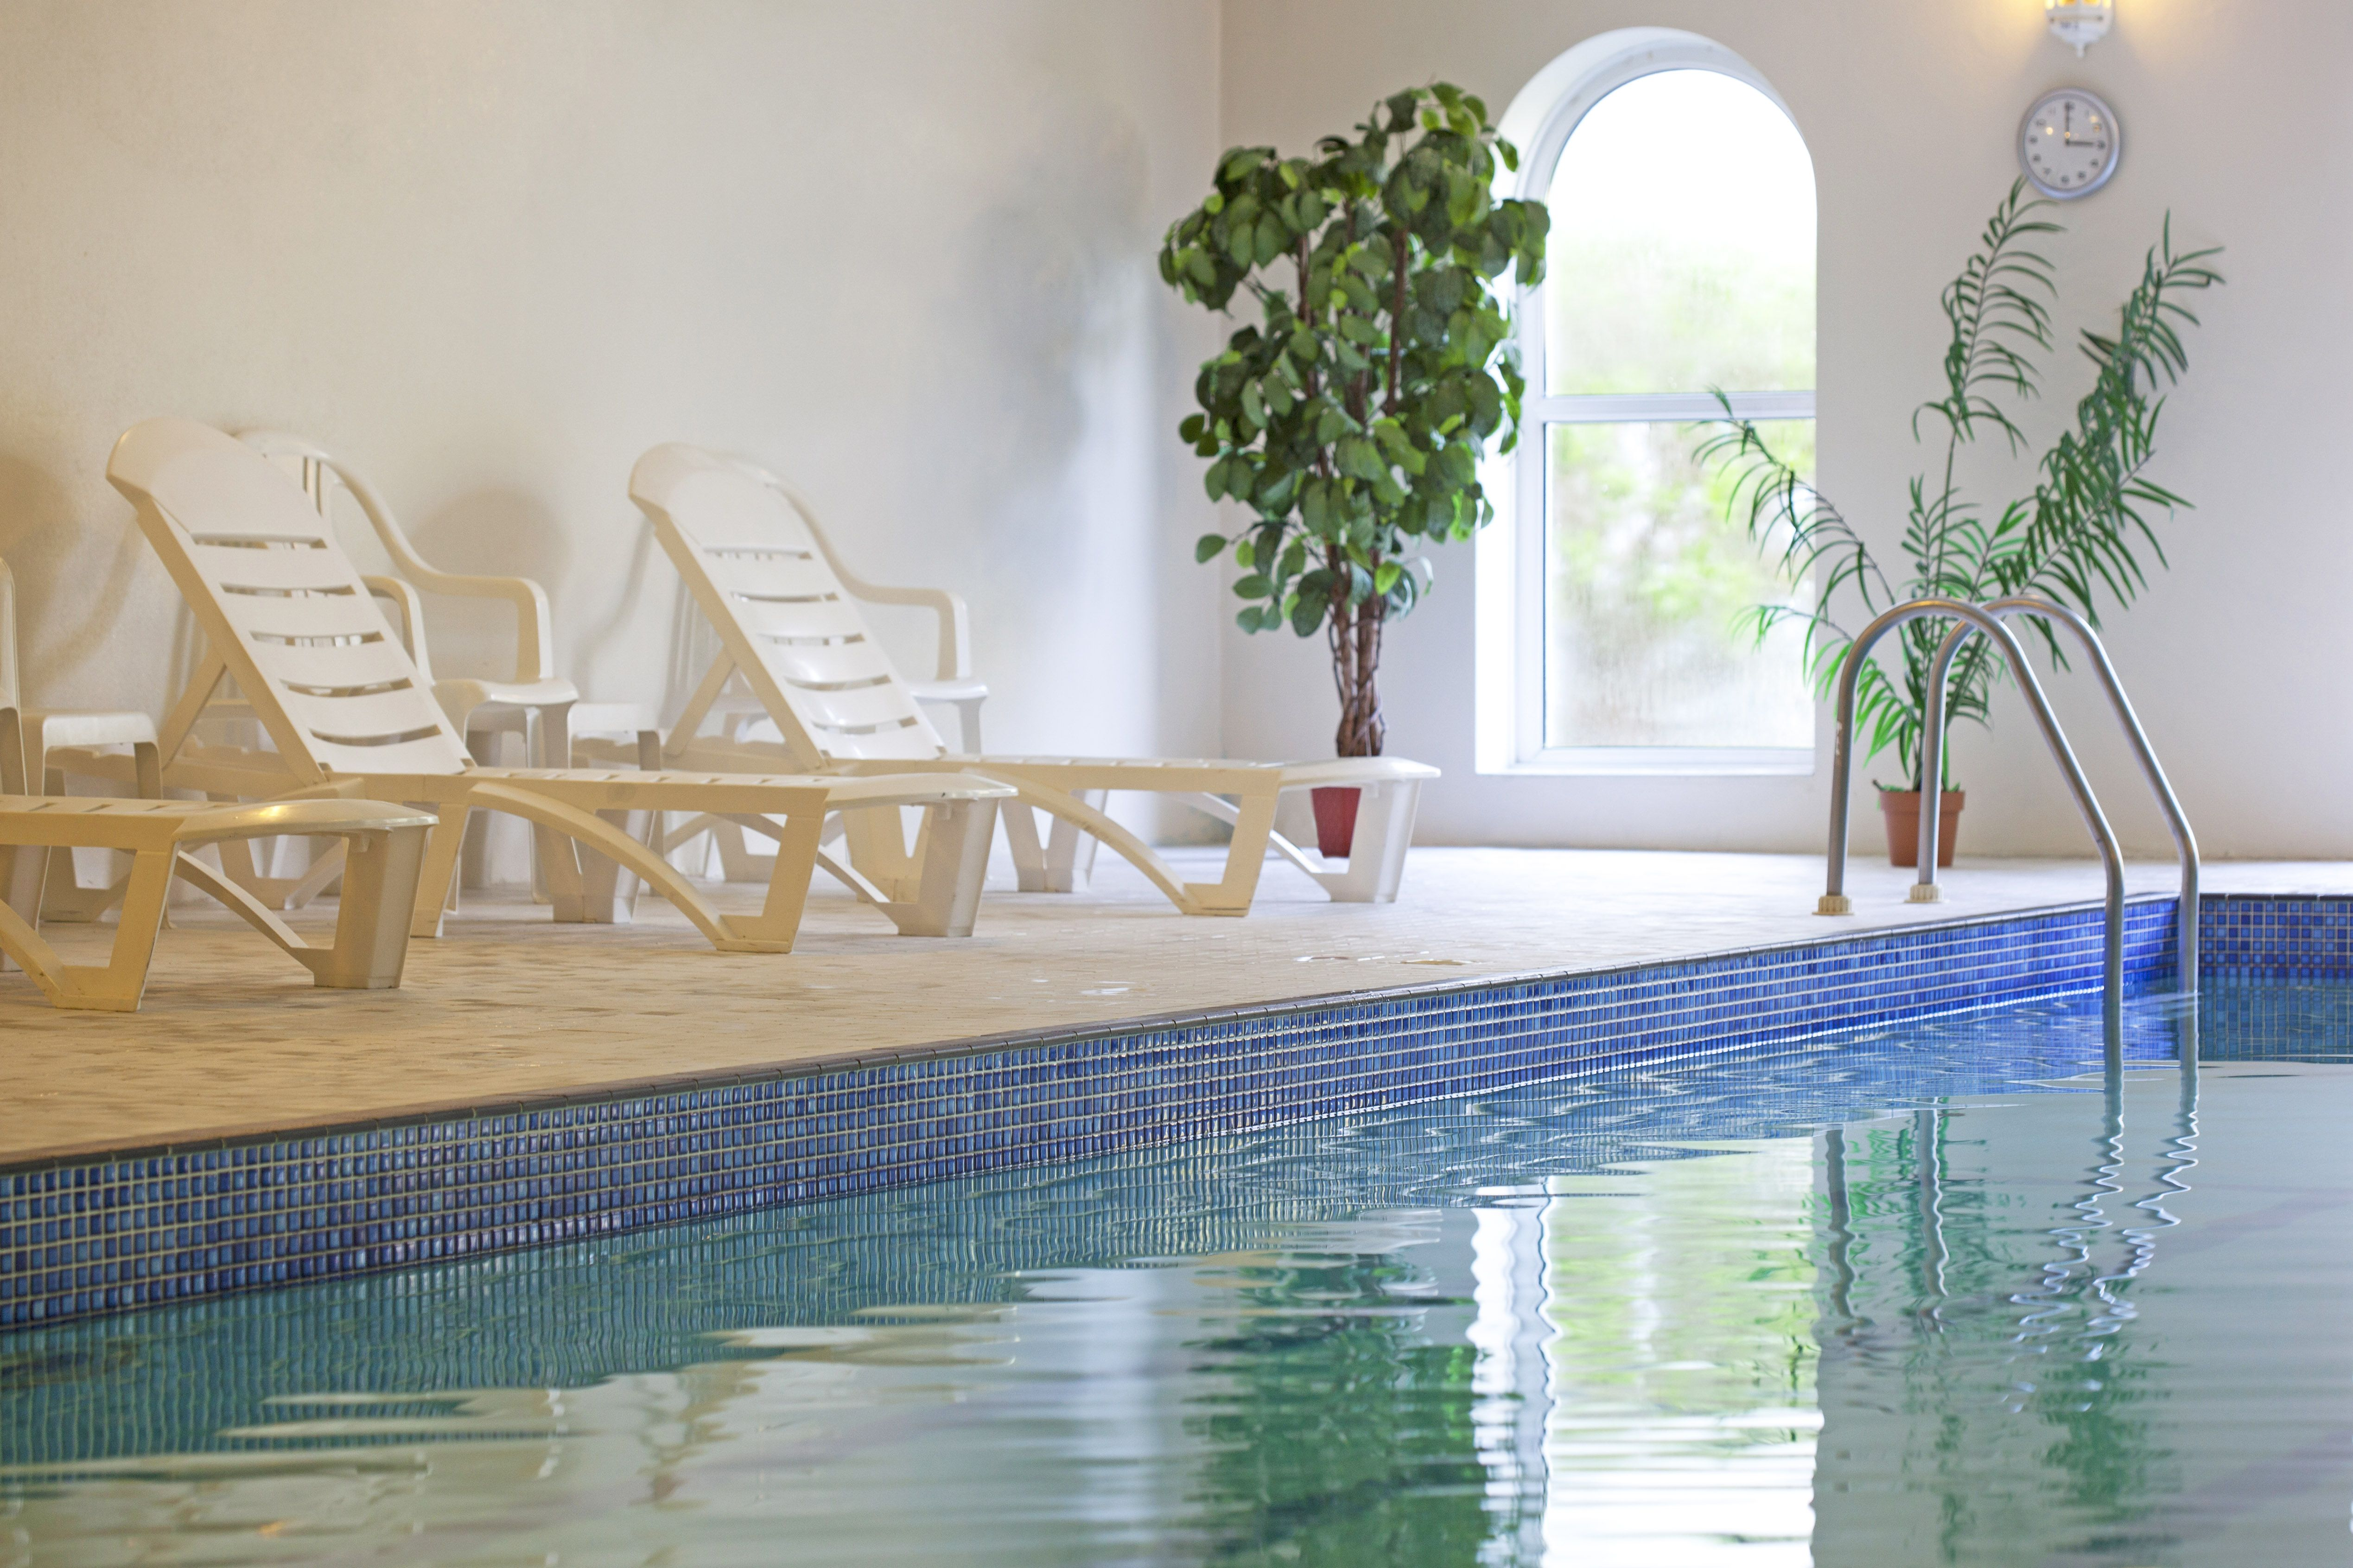 The Falmouth Hotel #relax & #refresh #mind & #body with a #swim in our heated indoor #swimming #pool www.falmouthhotel.com